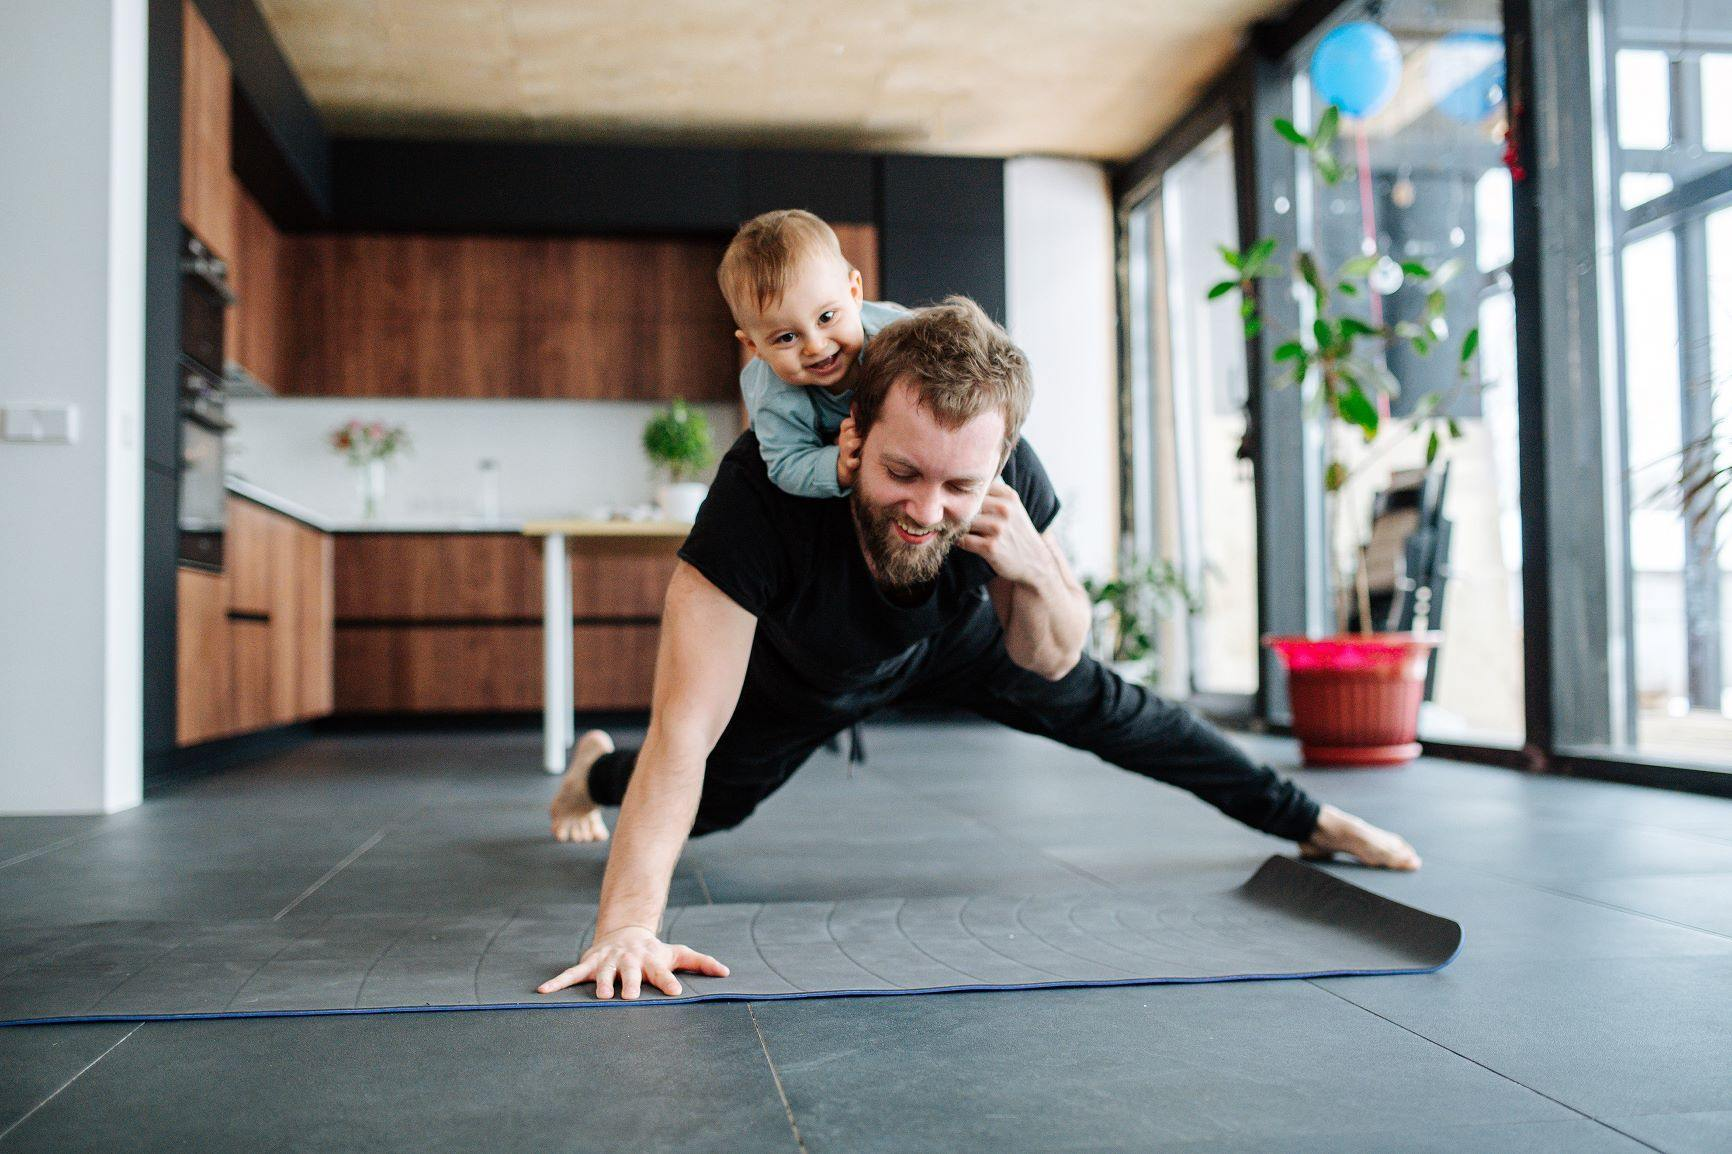 Man doing one arm push up with small child on his back